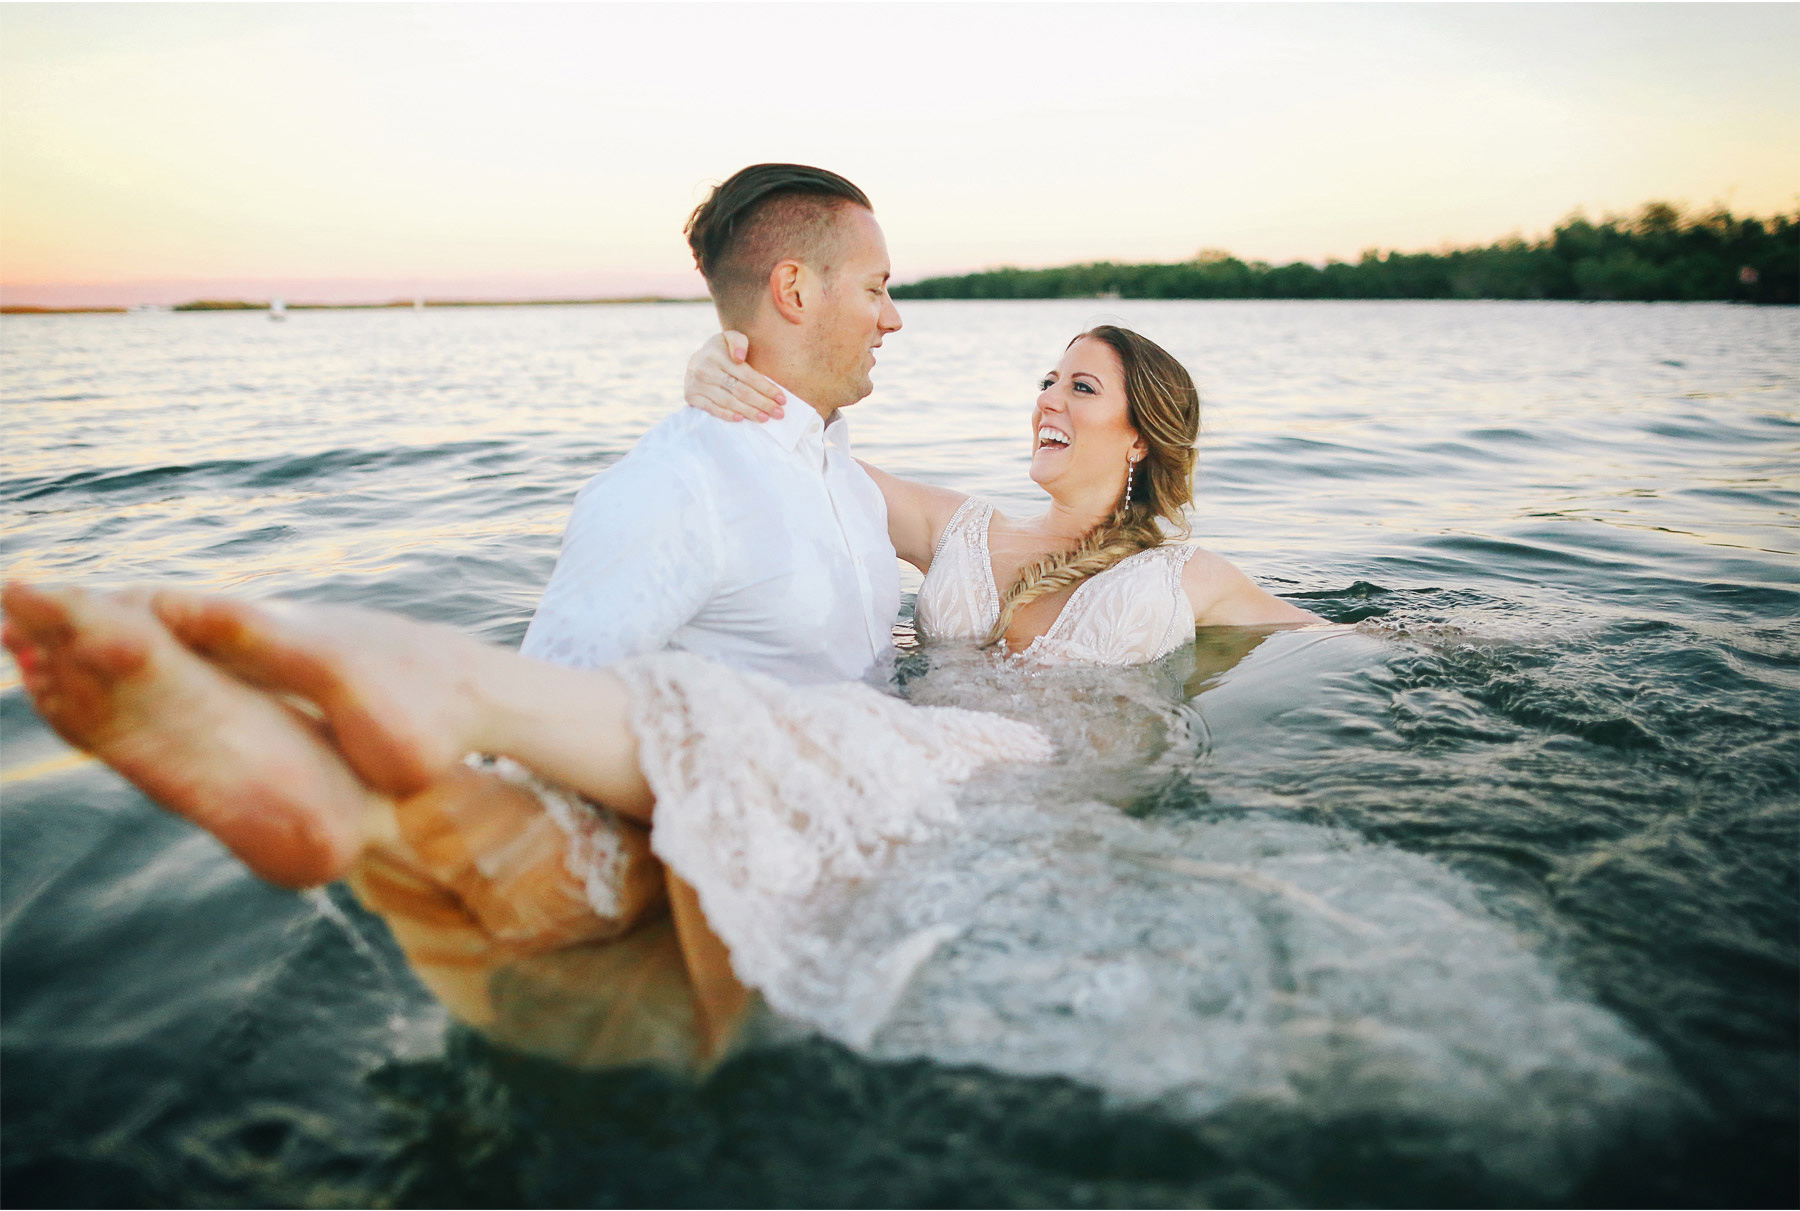 29-Key-Largo-Florida-Keys-Wedding-Photographer-by-Andrew-Vick-Photography-Playa-Largo-Resort-and-Spa-Hotel-Destination-Winter-Wear-It-Again-Bride-Groom-Ocean-Water-Wreck-the-Dress-Carrie-and-Brian.jpg